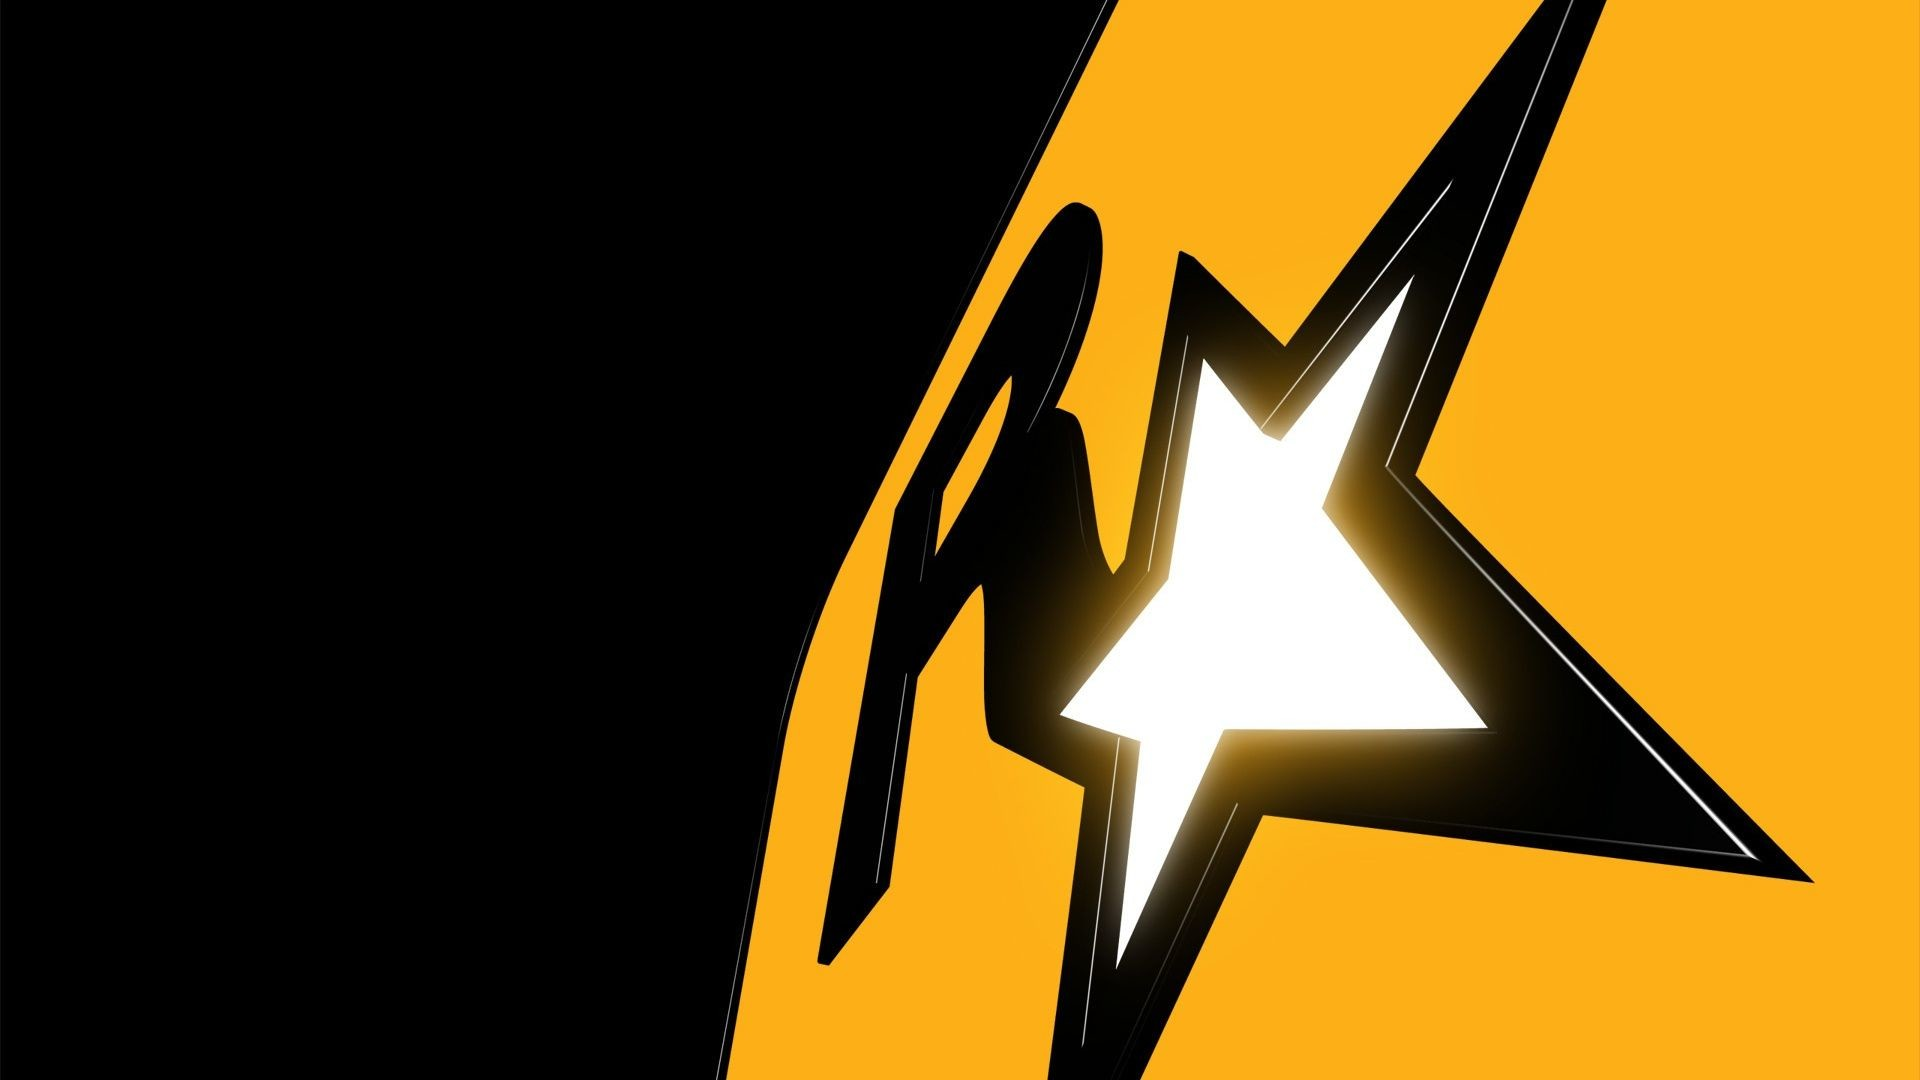 1920x1080 Rockstar Wallpaper Collection Ambience Series Rockstar Games - HD Wallpapers